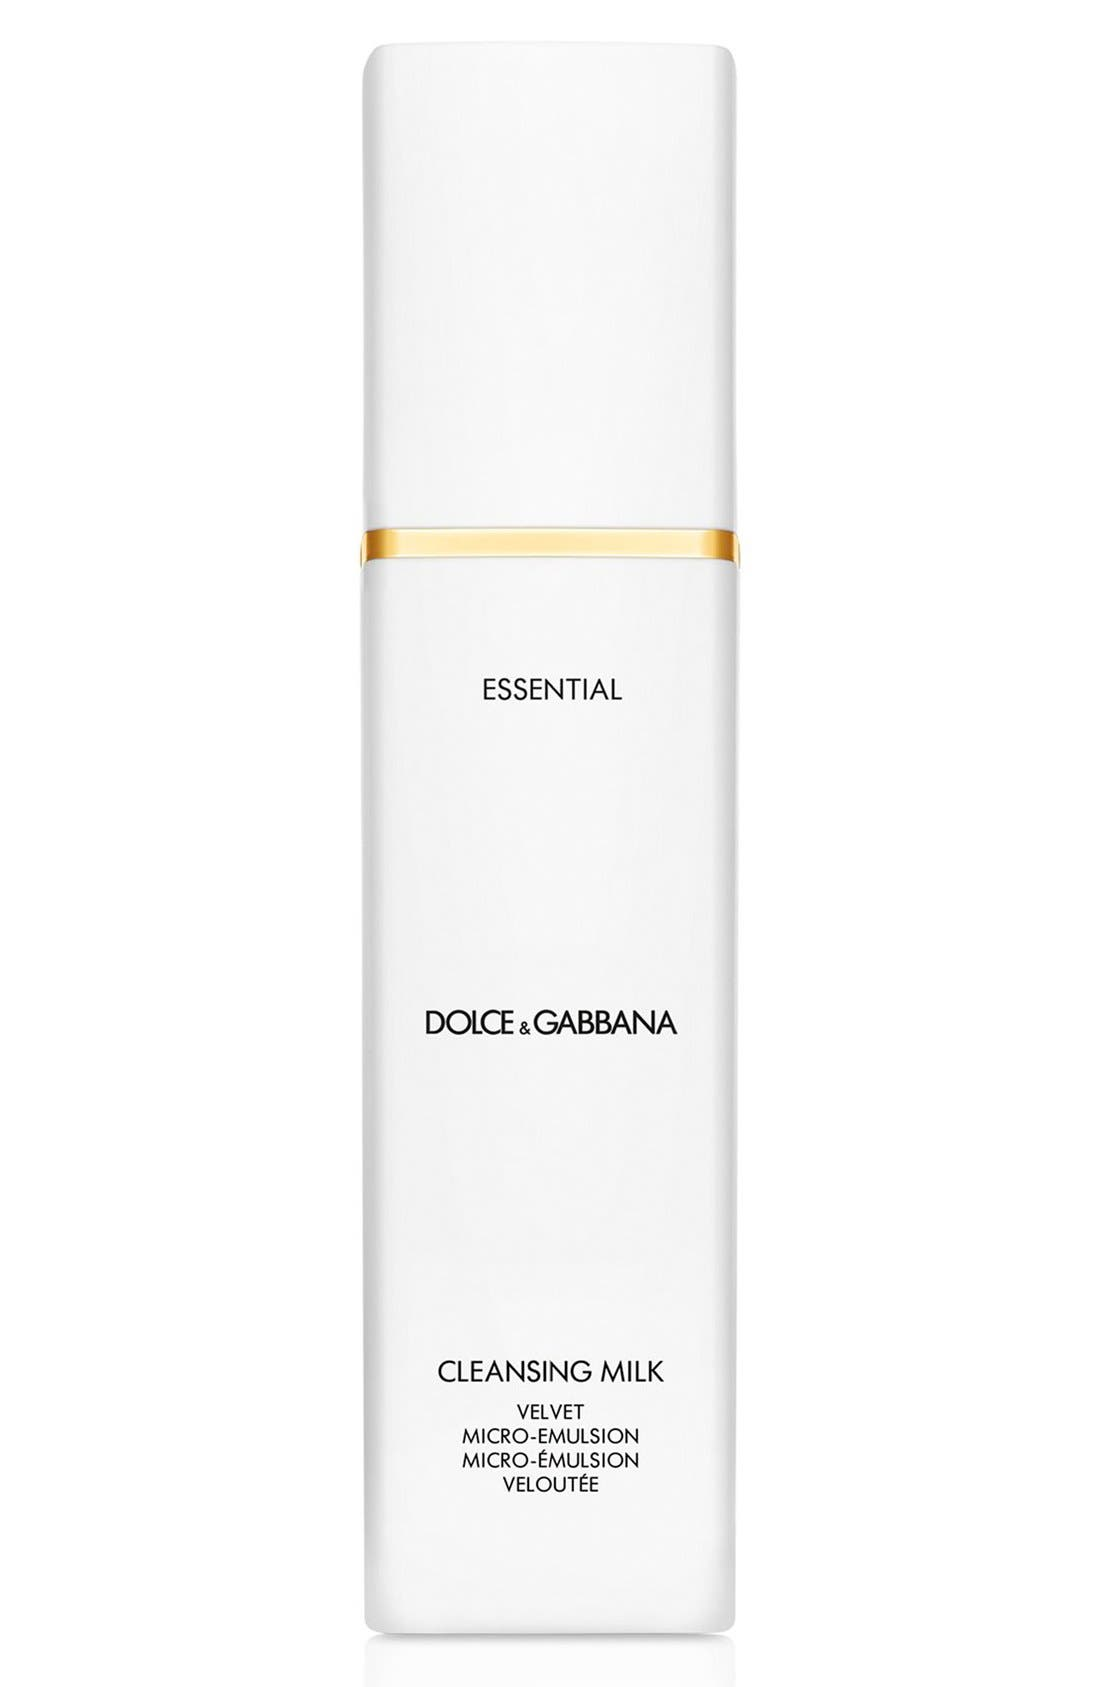 Dolce&Gabbana Beauty 'Essential' Cleansing Milk Velvet Micro-Emulsion